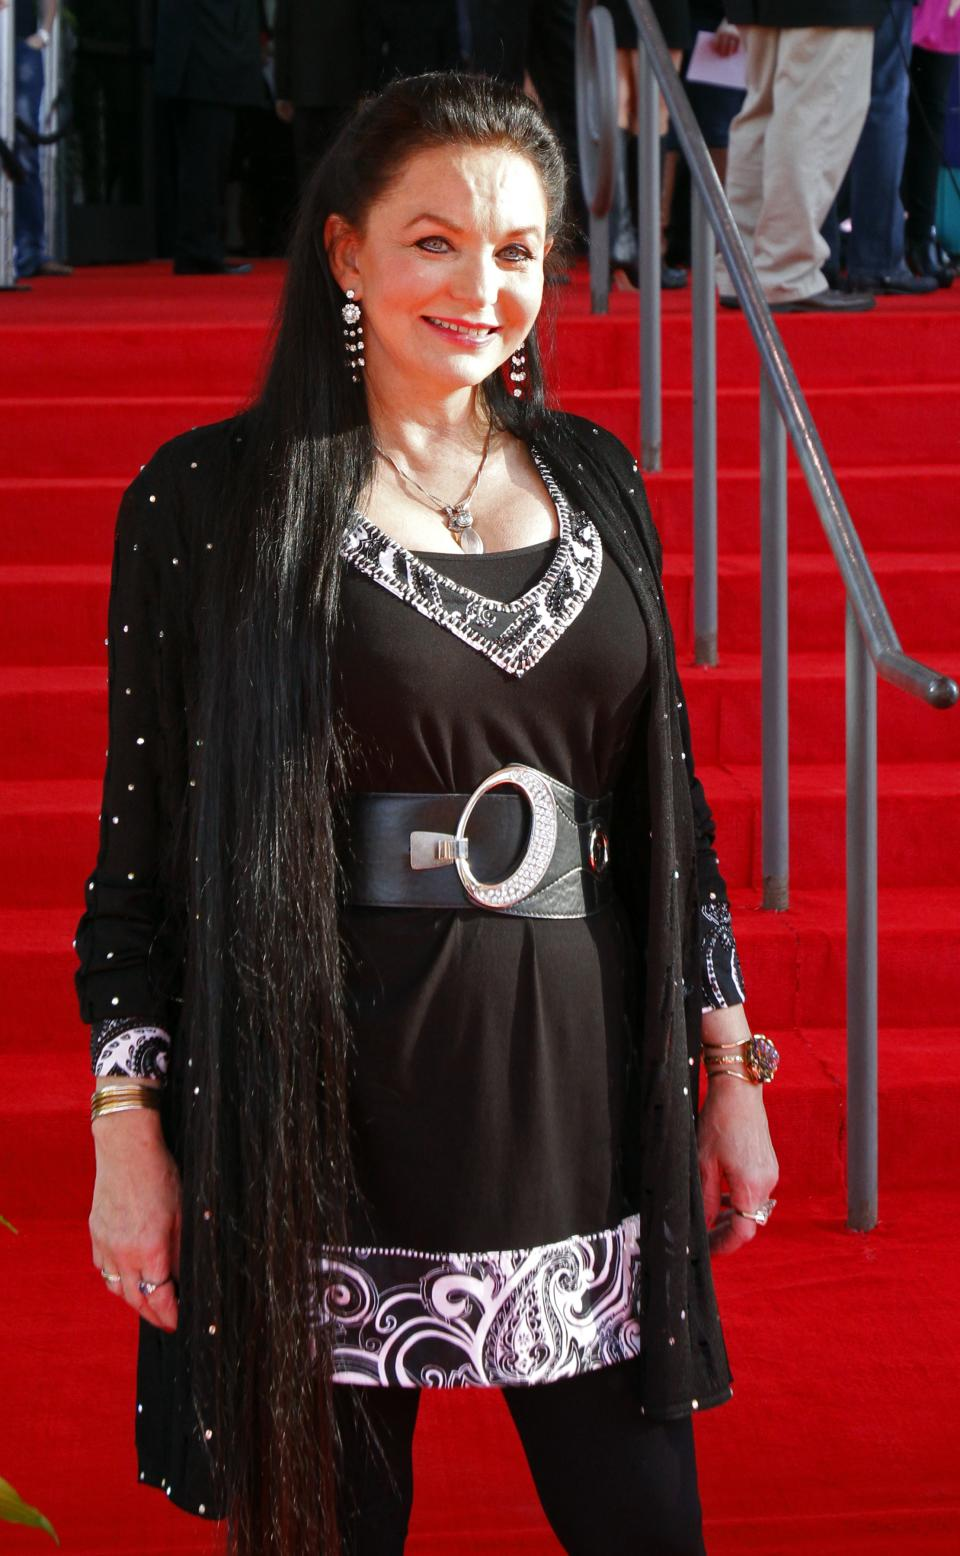 Crystal Gayle attends the Country Music Hall of Fame Inductions on Sunday, Oct. 21, 2012 in Nashville, Tenn. (Photo by Wade Payne/Invision/AP)